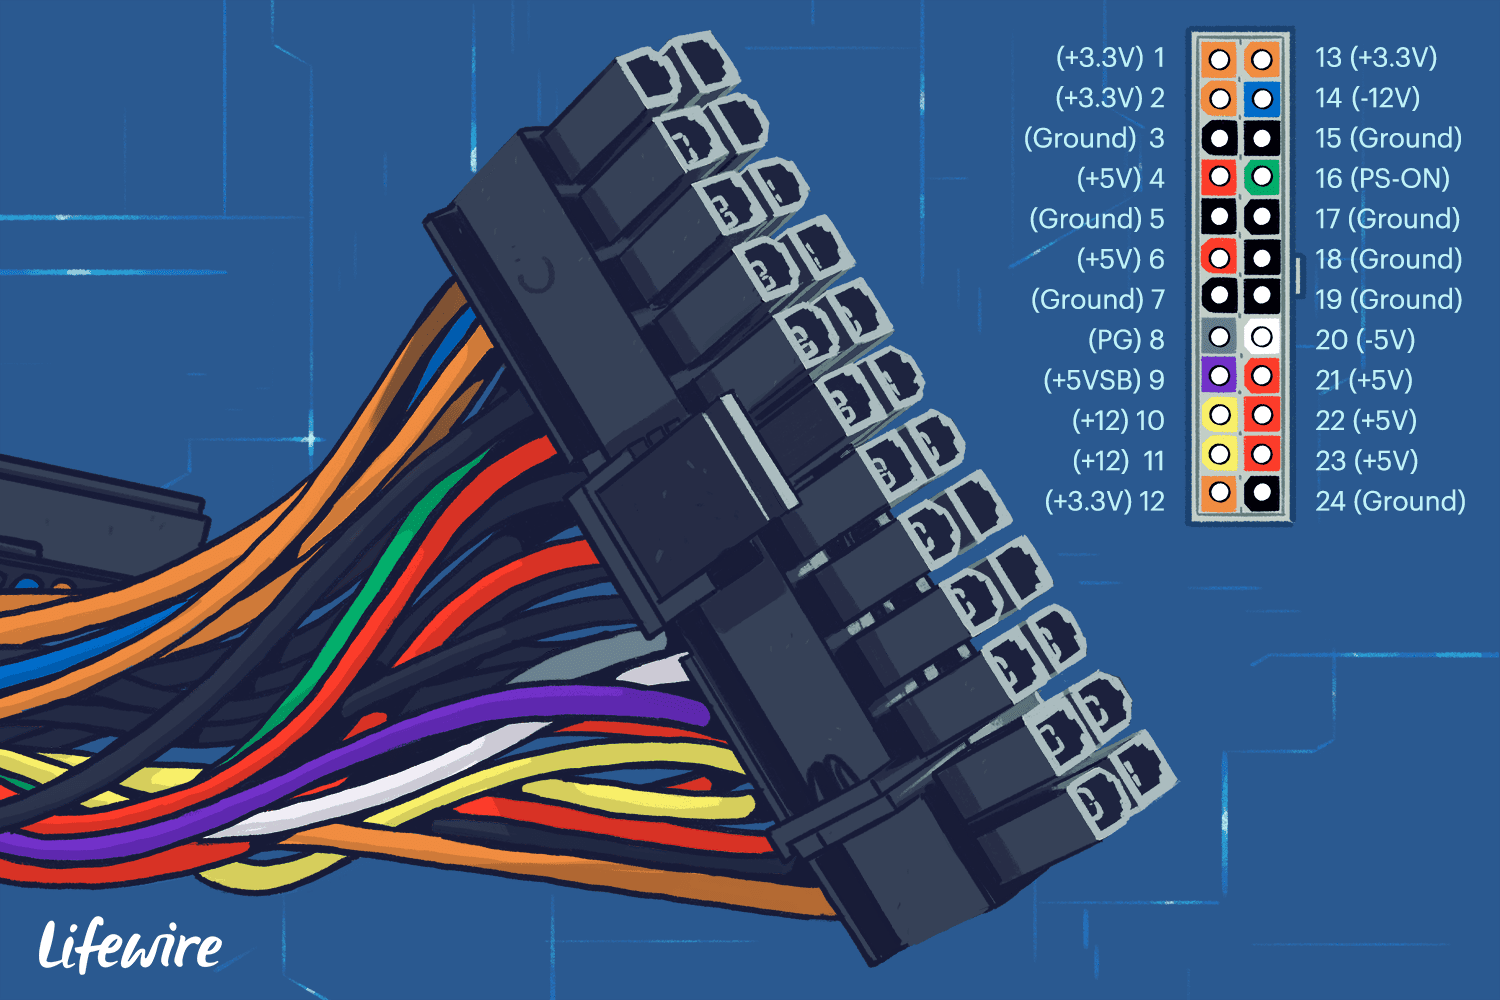 12v 14 pin relay wiring diagram 24    pin    motherboard power connector pinout  24    pin    motherboard power connector pinout